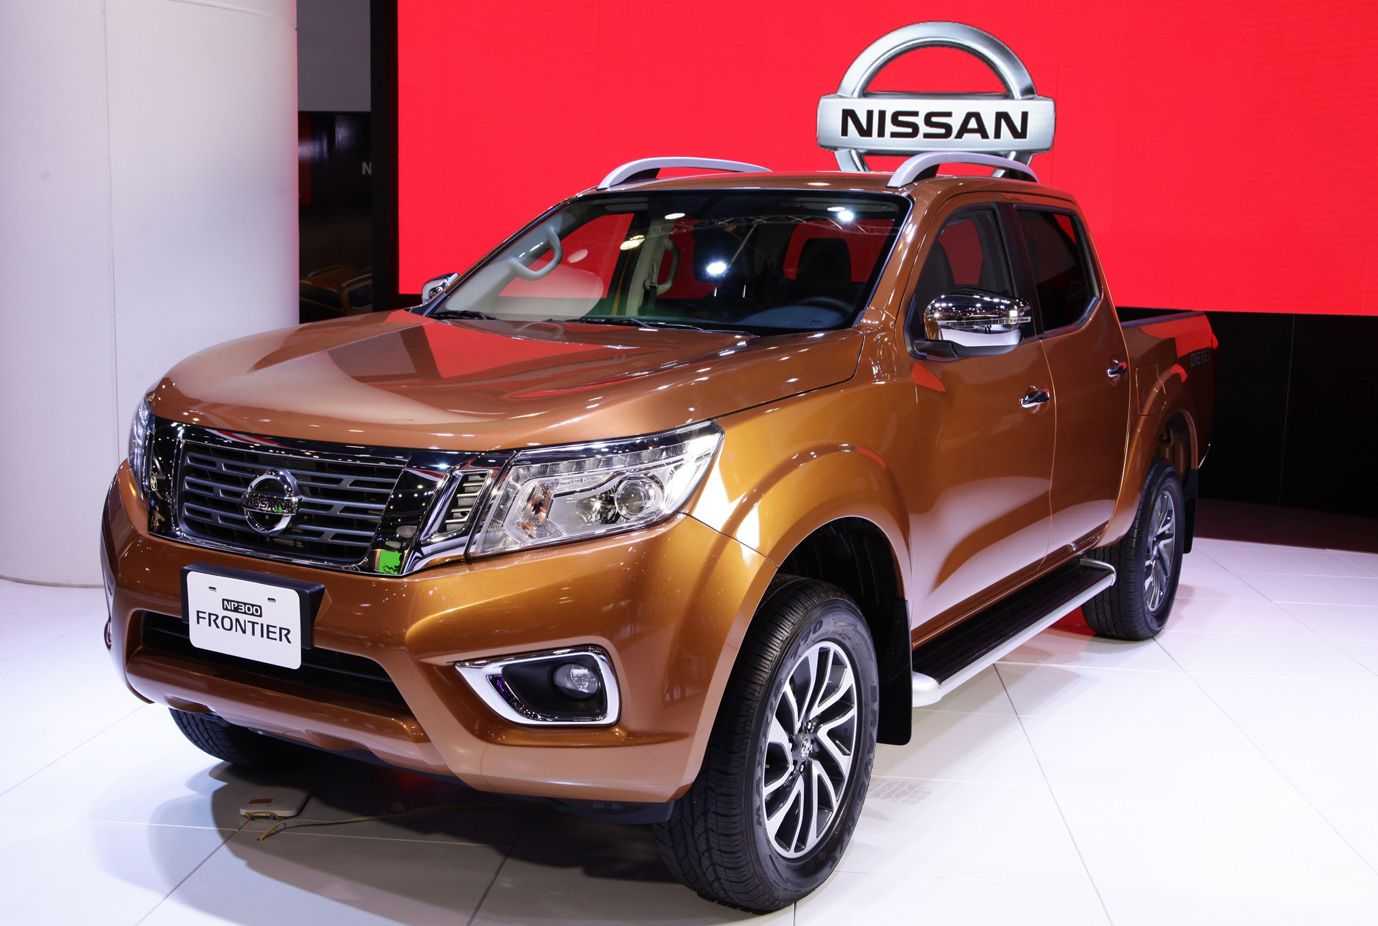 The next generation nissan frontier basically an upgrade to the nissan navara has been displayed at the international exhibition of buenos aires